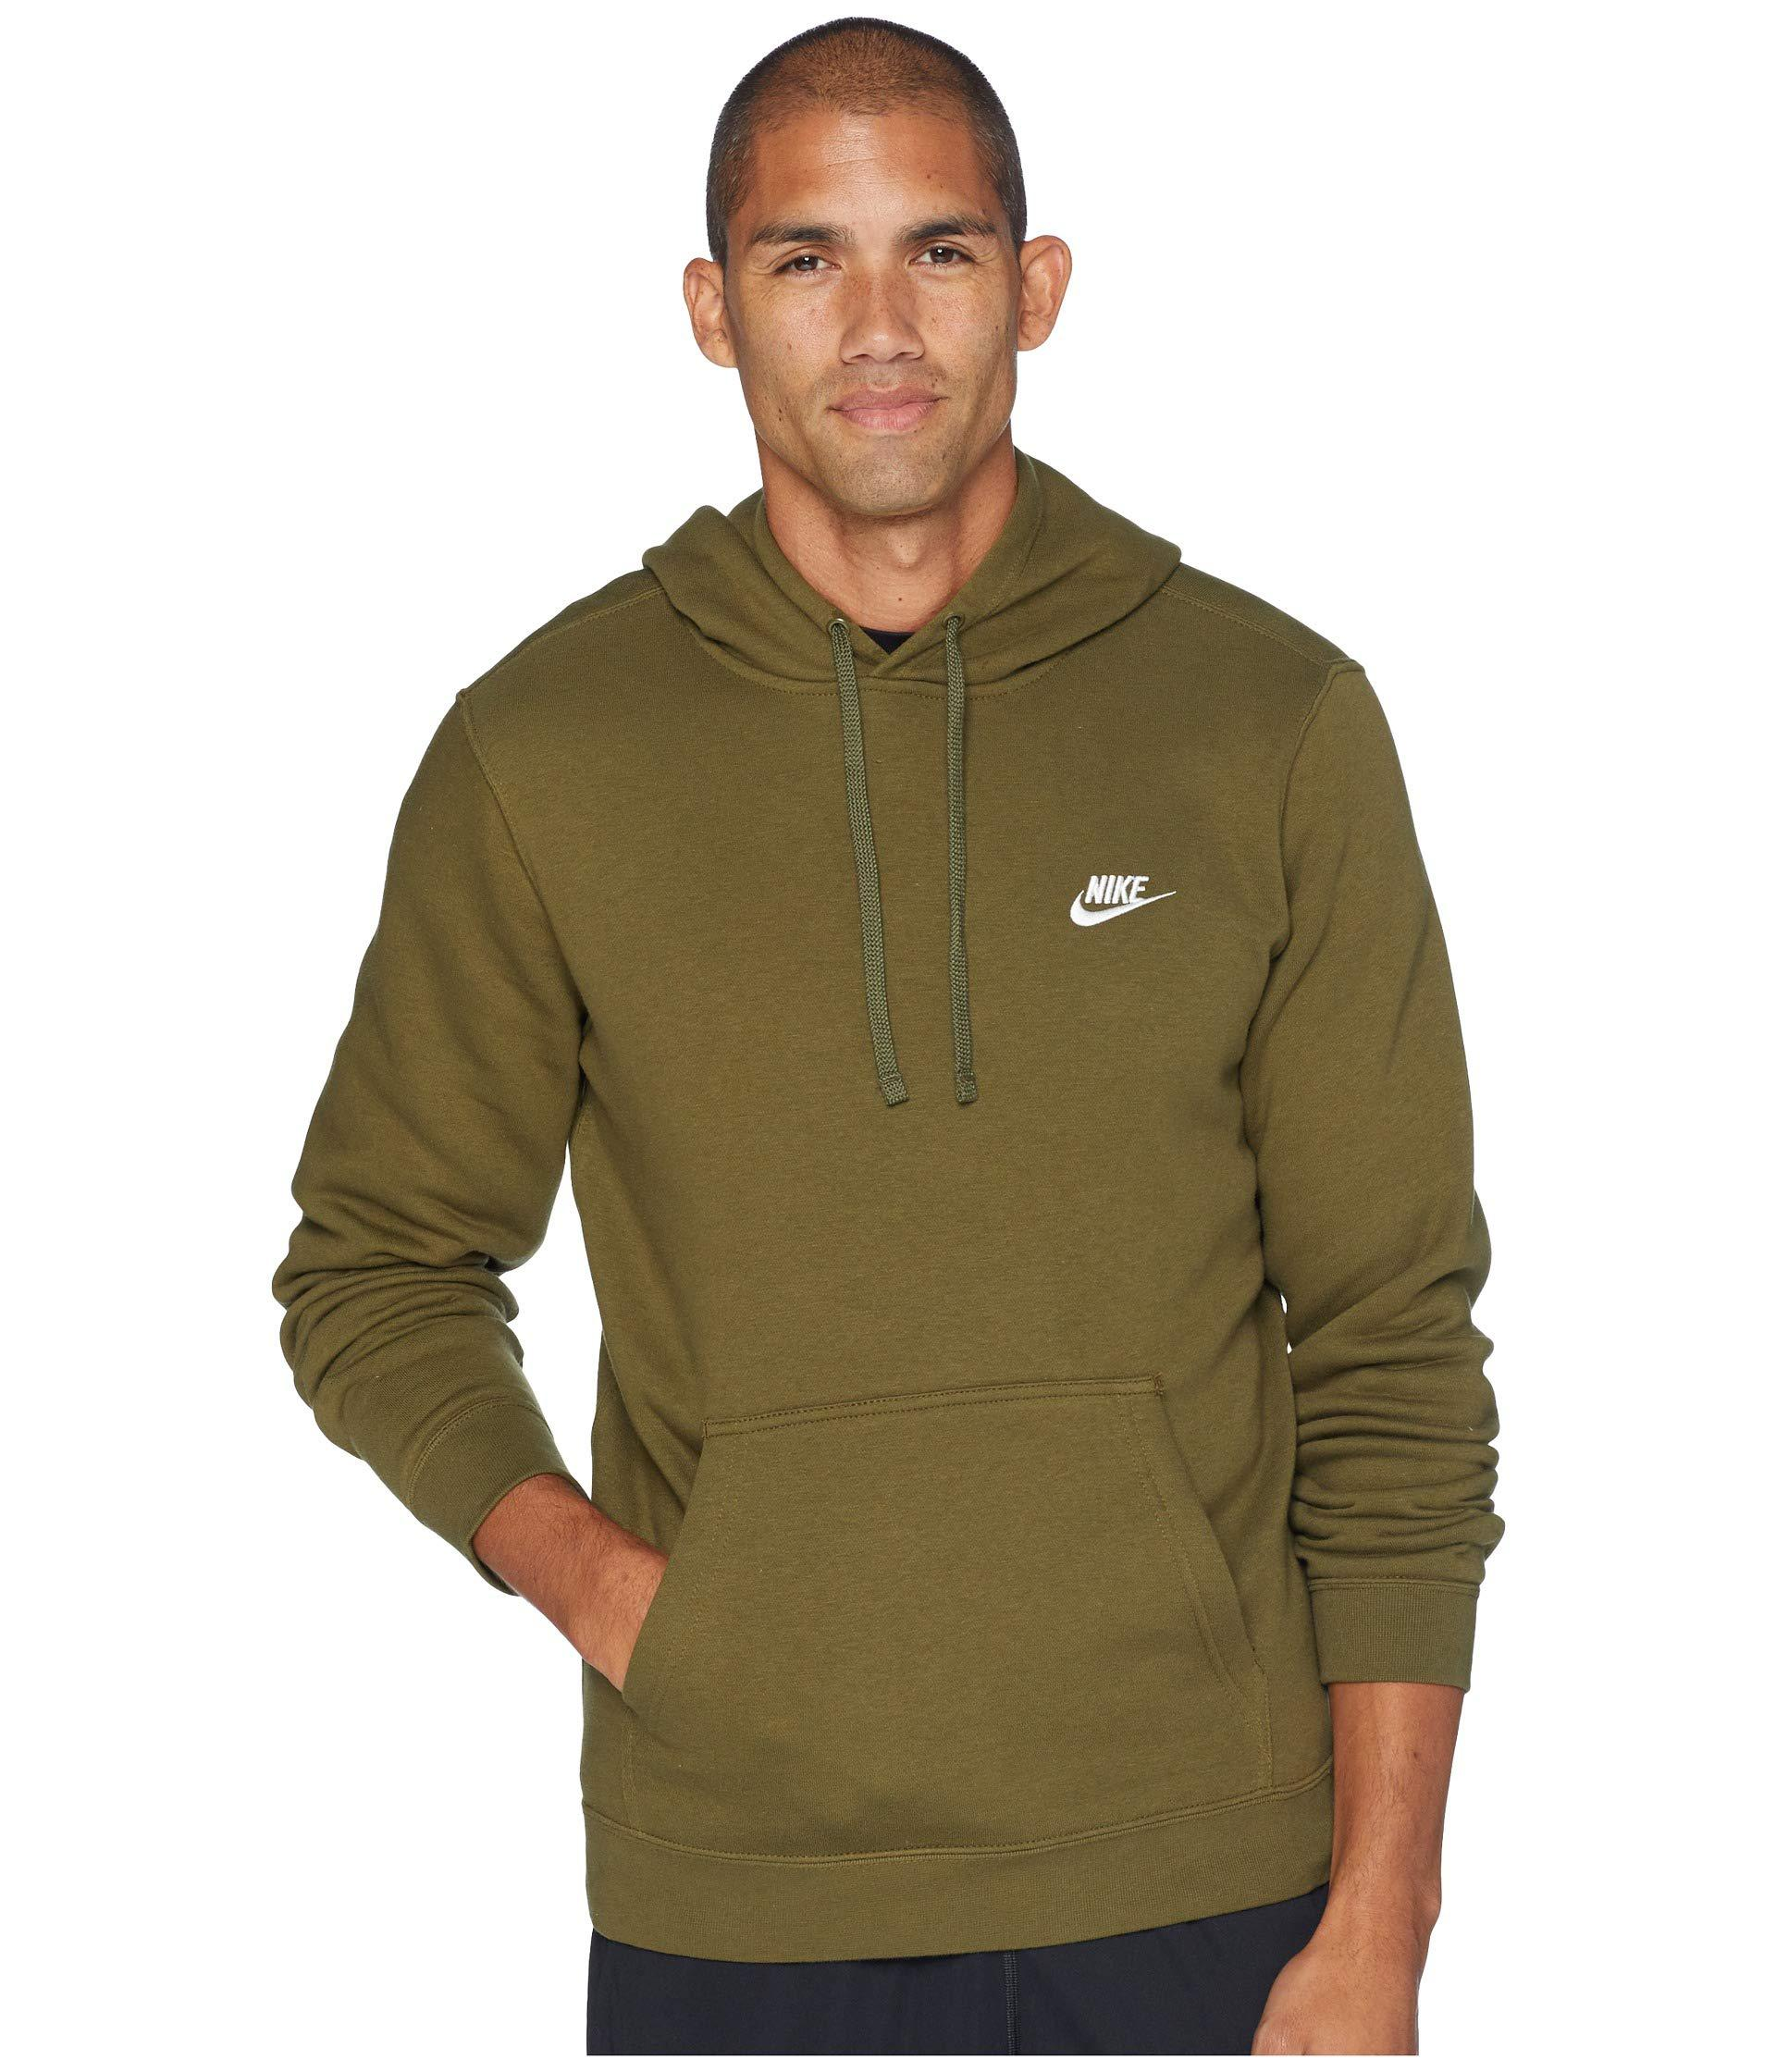 new styles online for sale usa cheap sale Club Fleece Pullover Hoodie